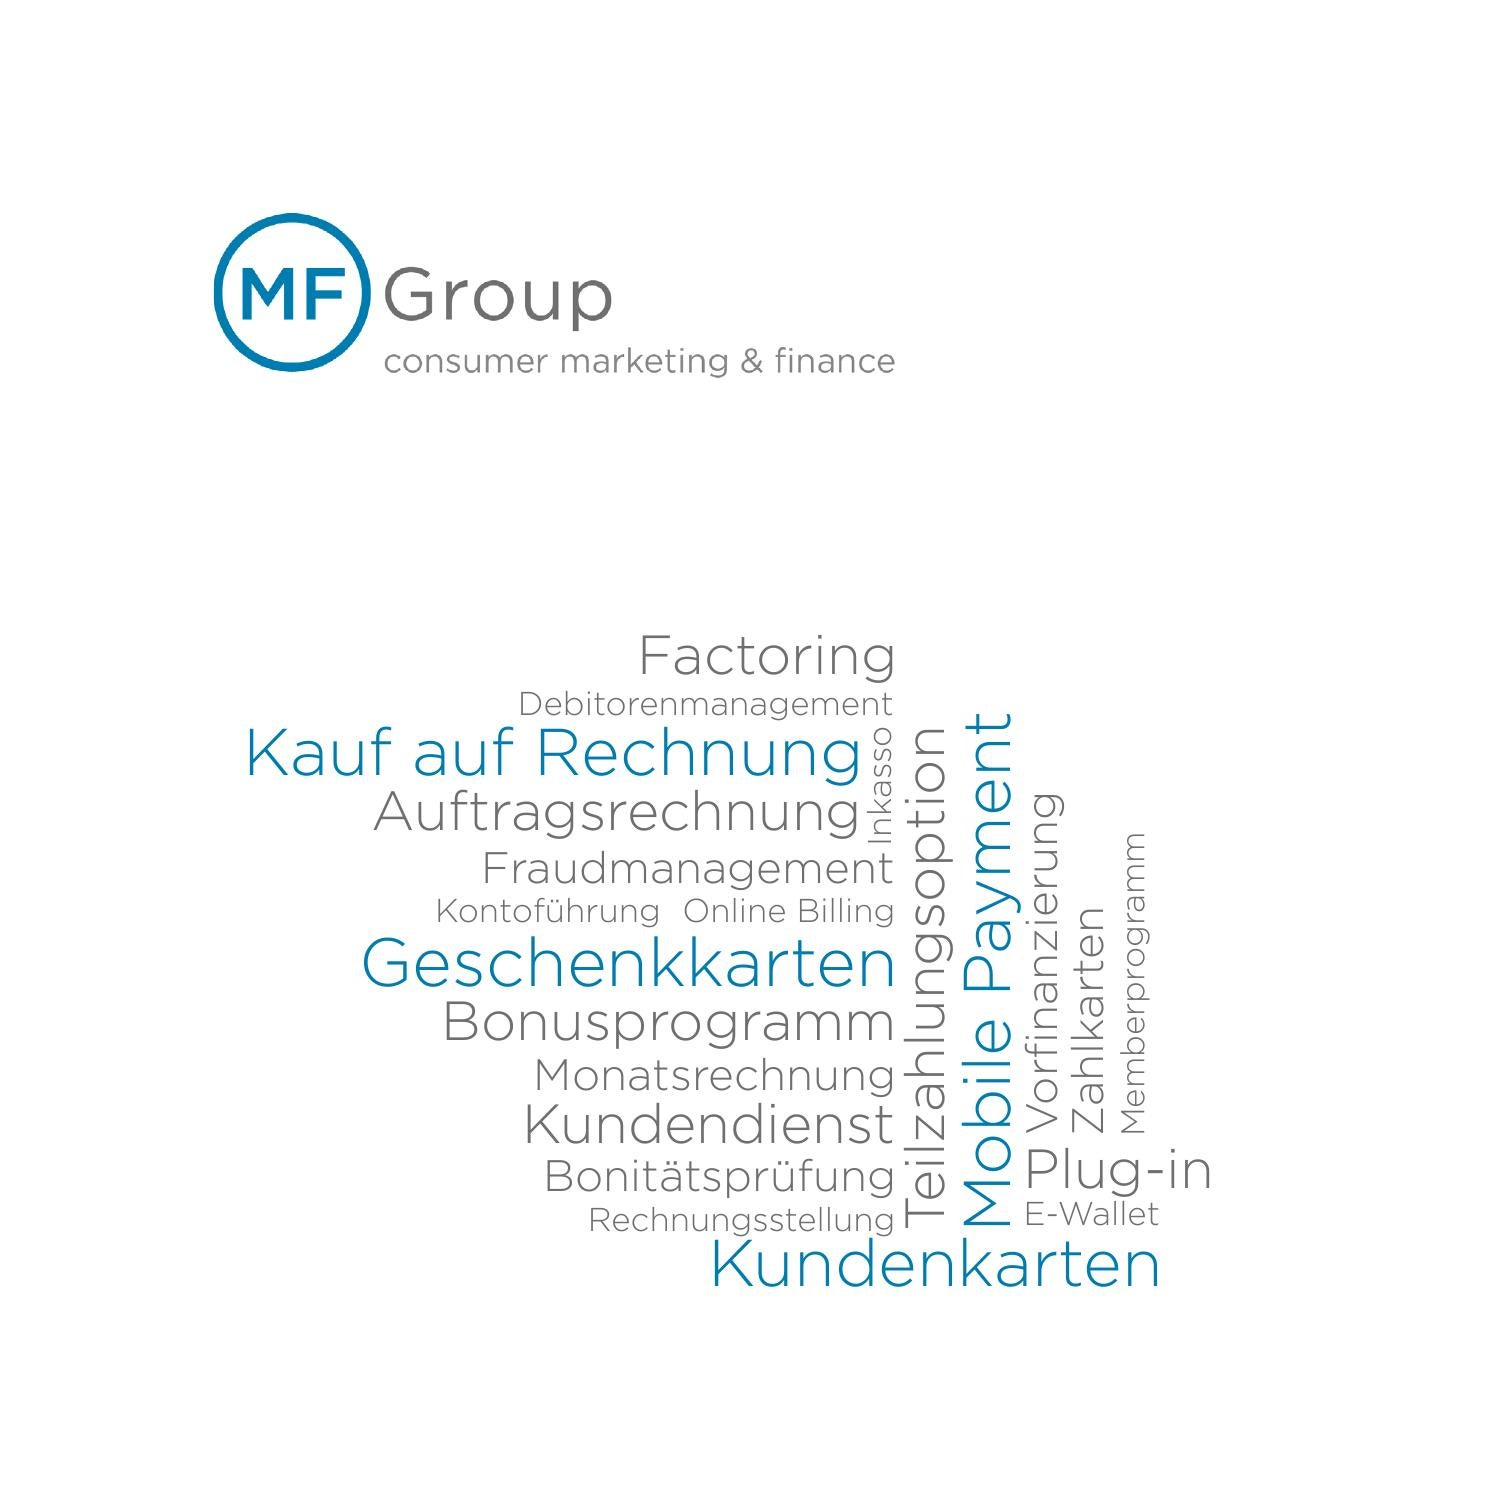 Mf Group Image Broschüre Mf Group By Mfit Mfit Issuu